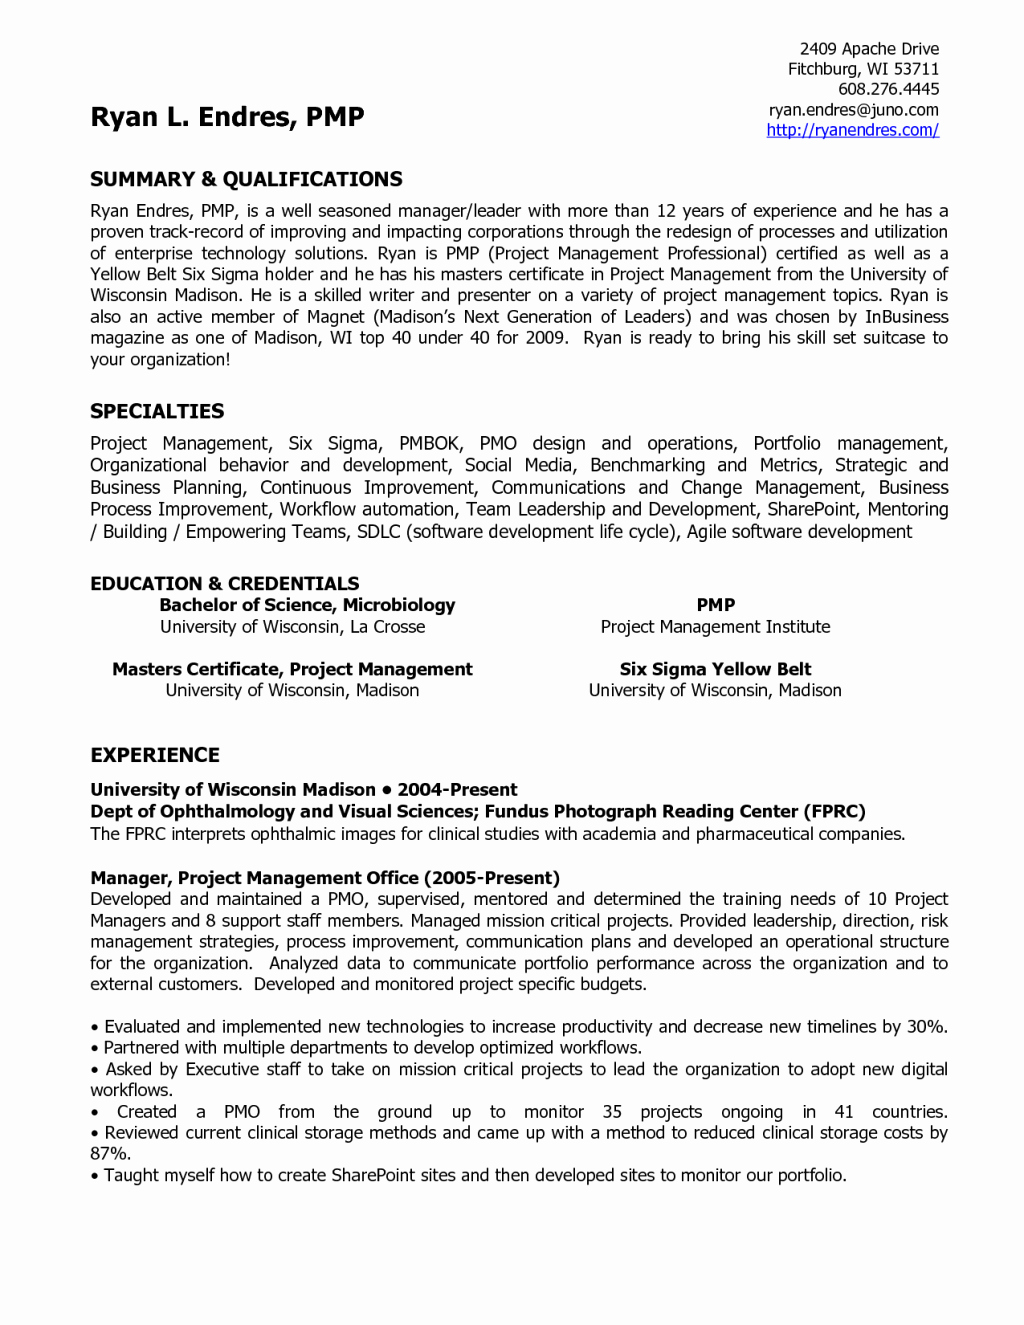 clinical laboratory scientist resume